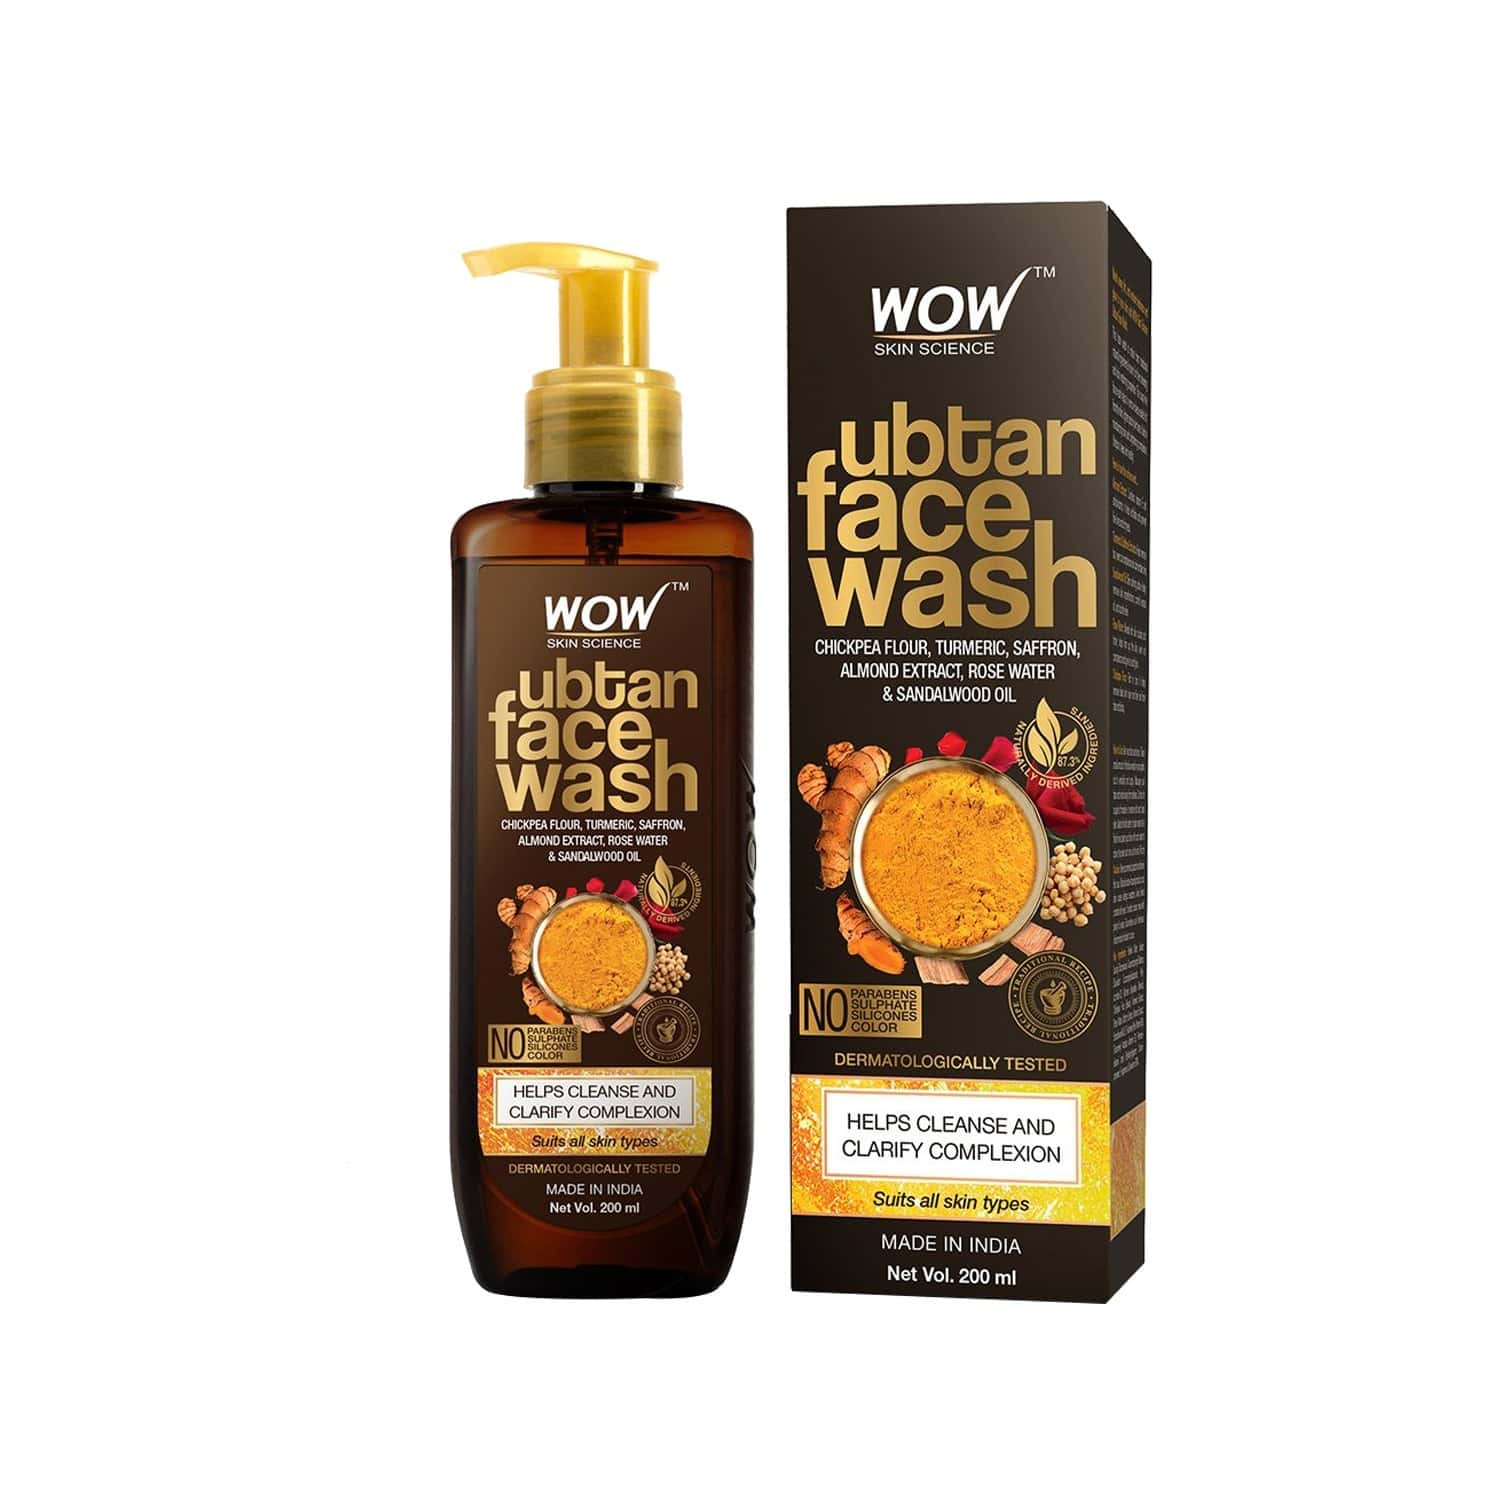 Wow Skin Science Ubtan Face Wash - 200ml